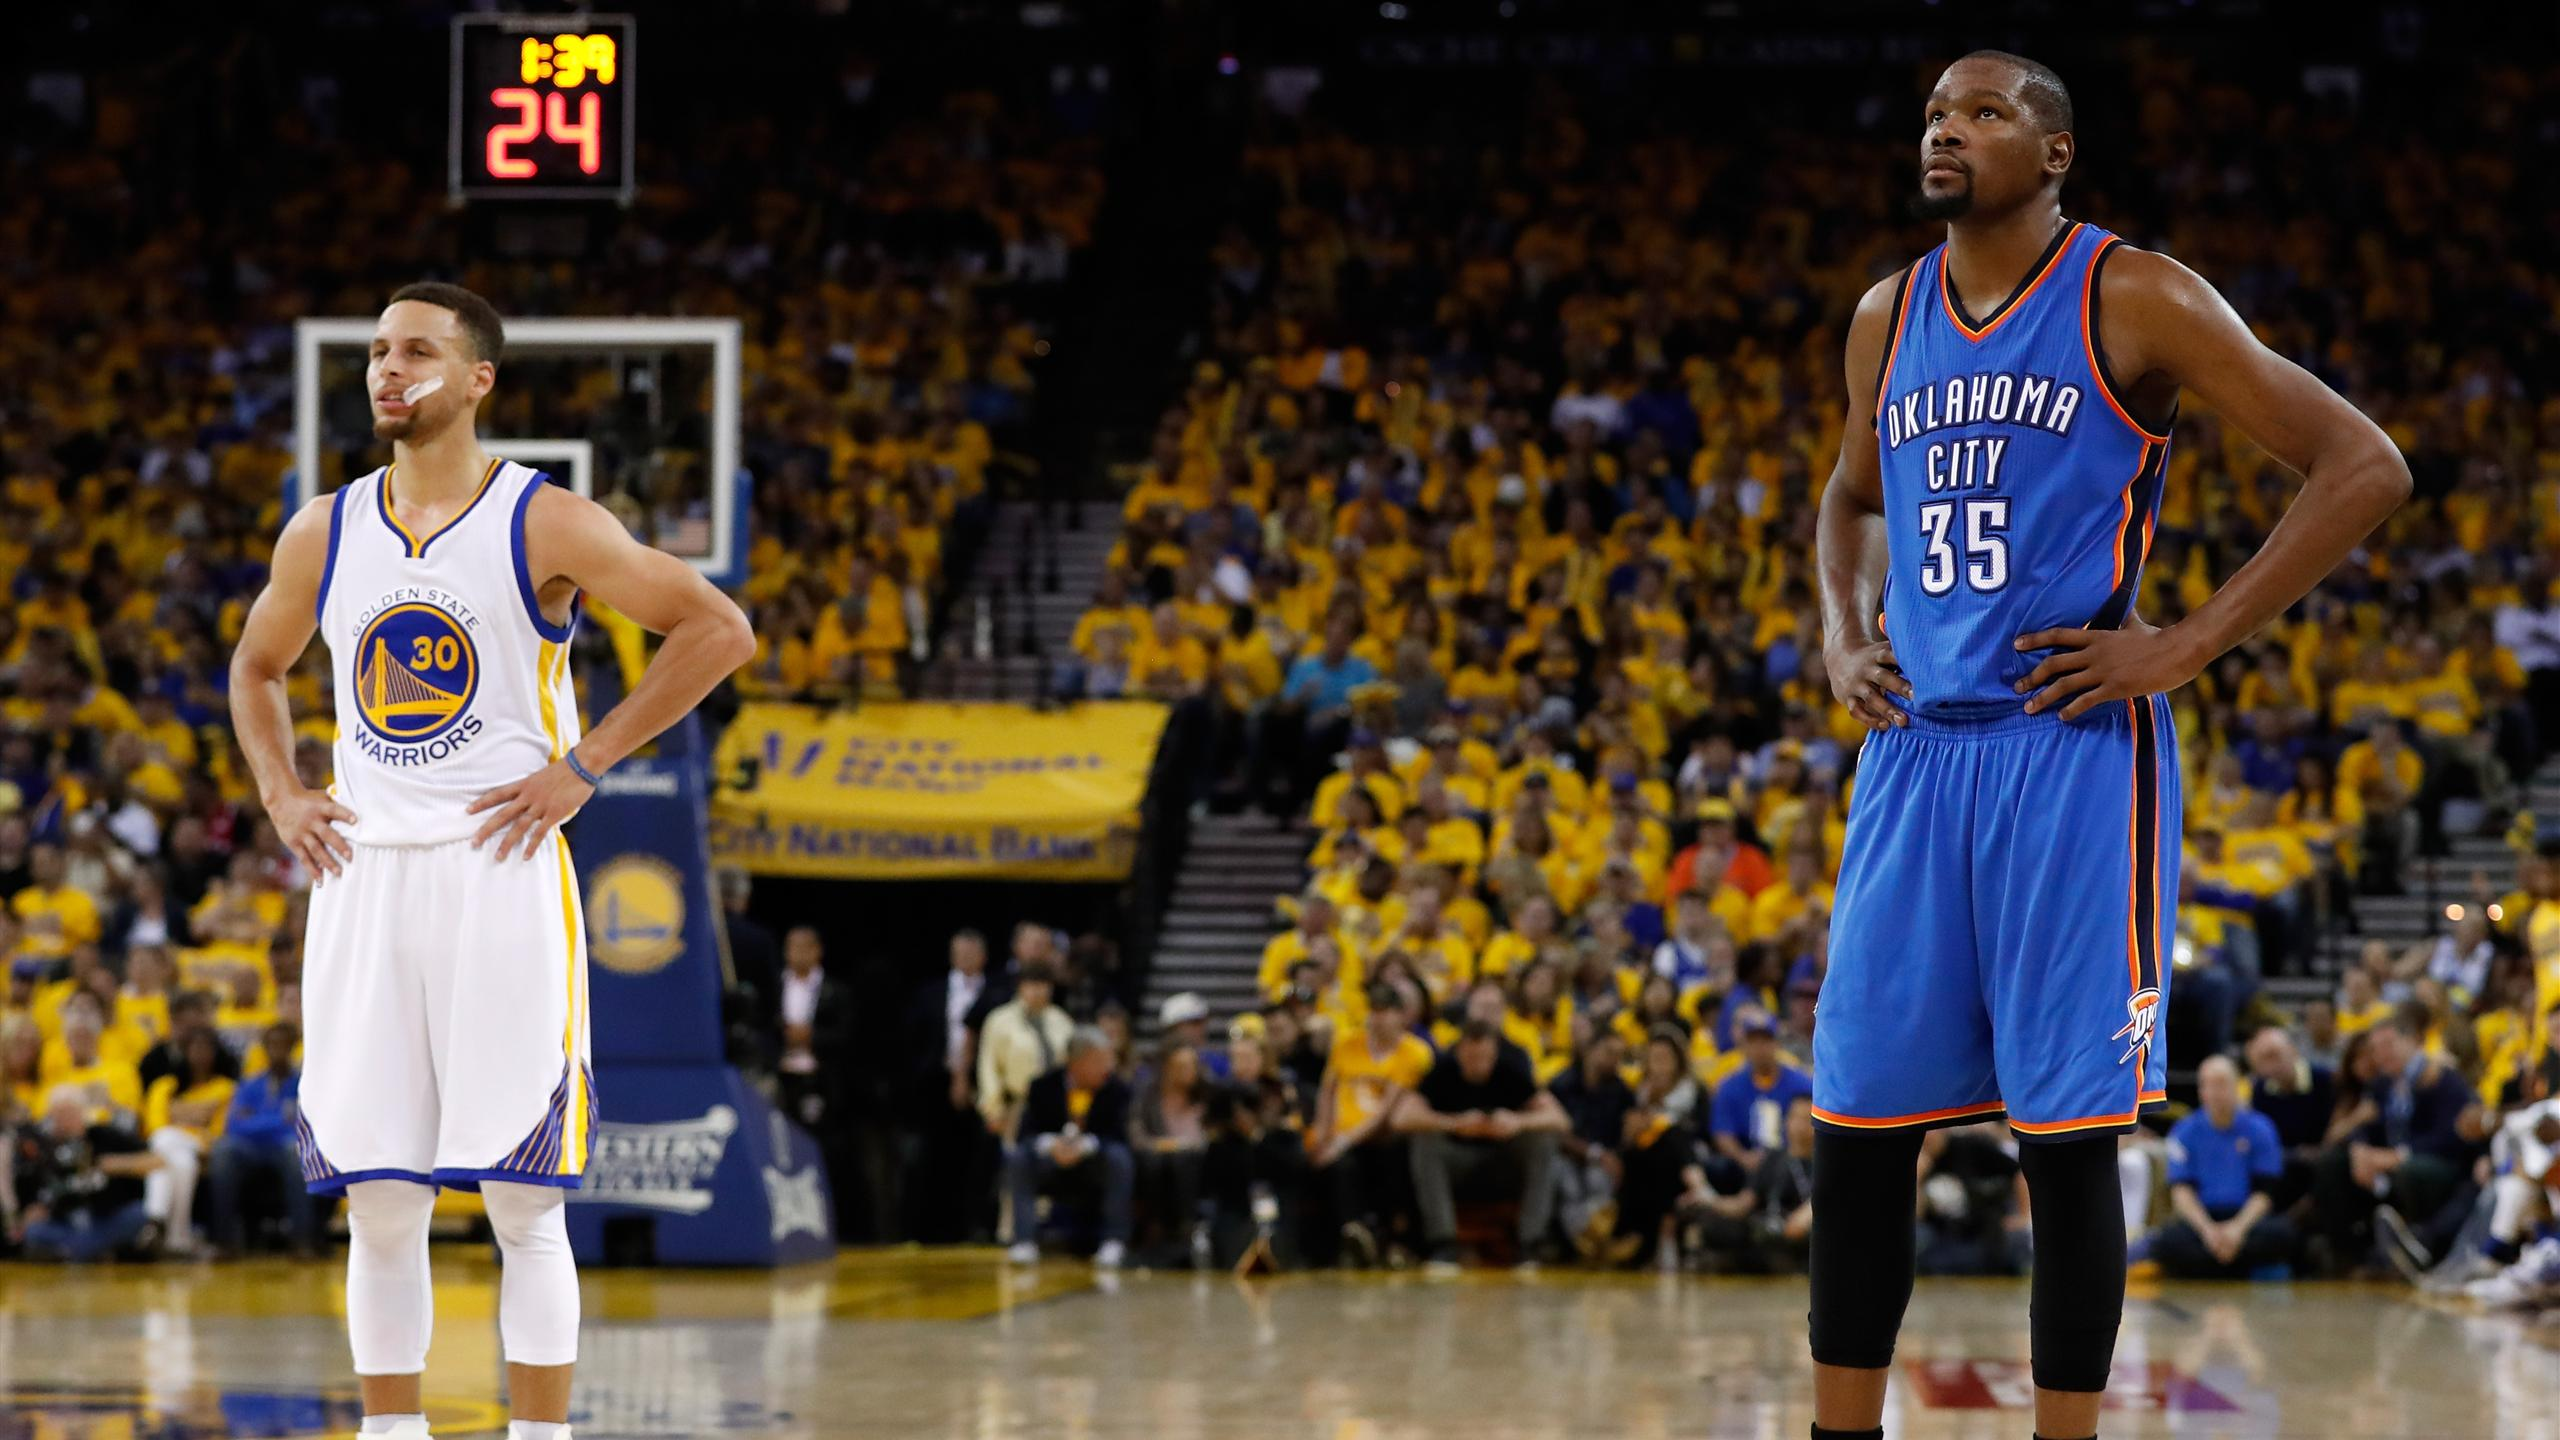 Oklahoma City Thunder - Golden State Warriors (Curry /Durant)